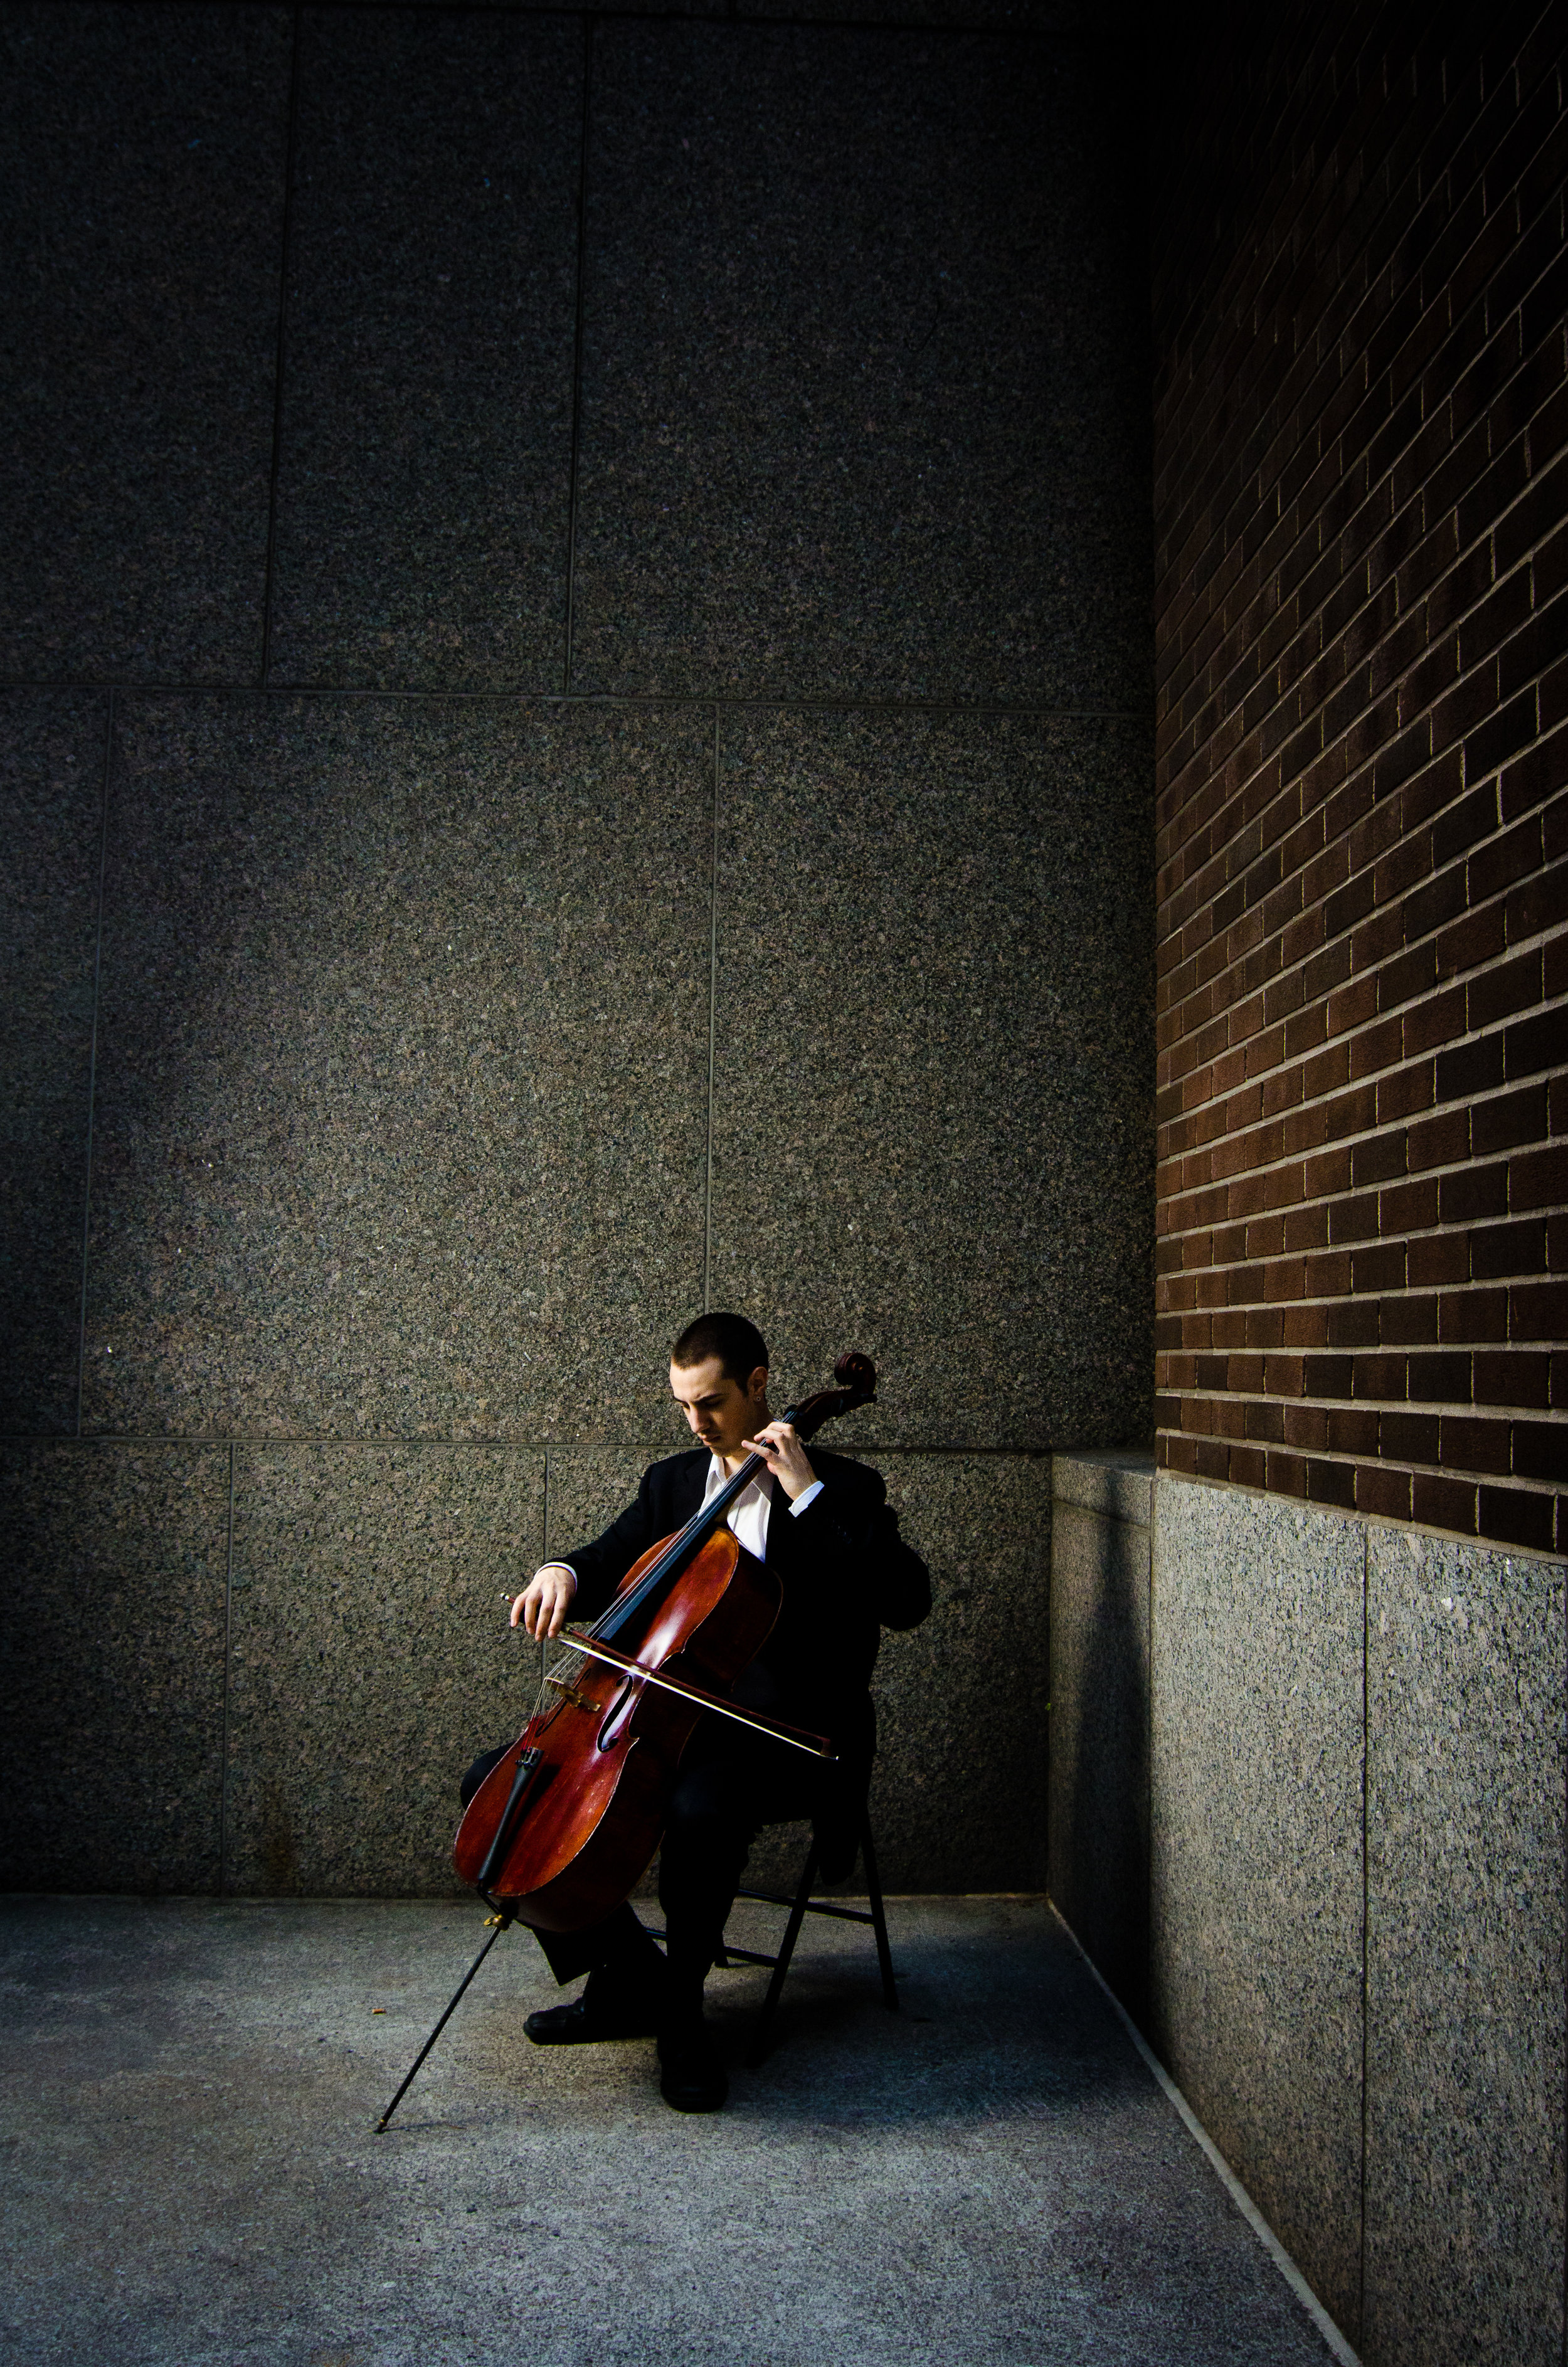 Artist-Portrait-Bryan-Holt-Promotional-Playing-Cello-Montreal-Music-Photographer-Alex-Tran